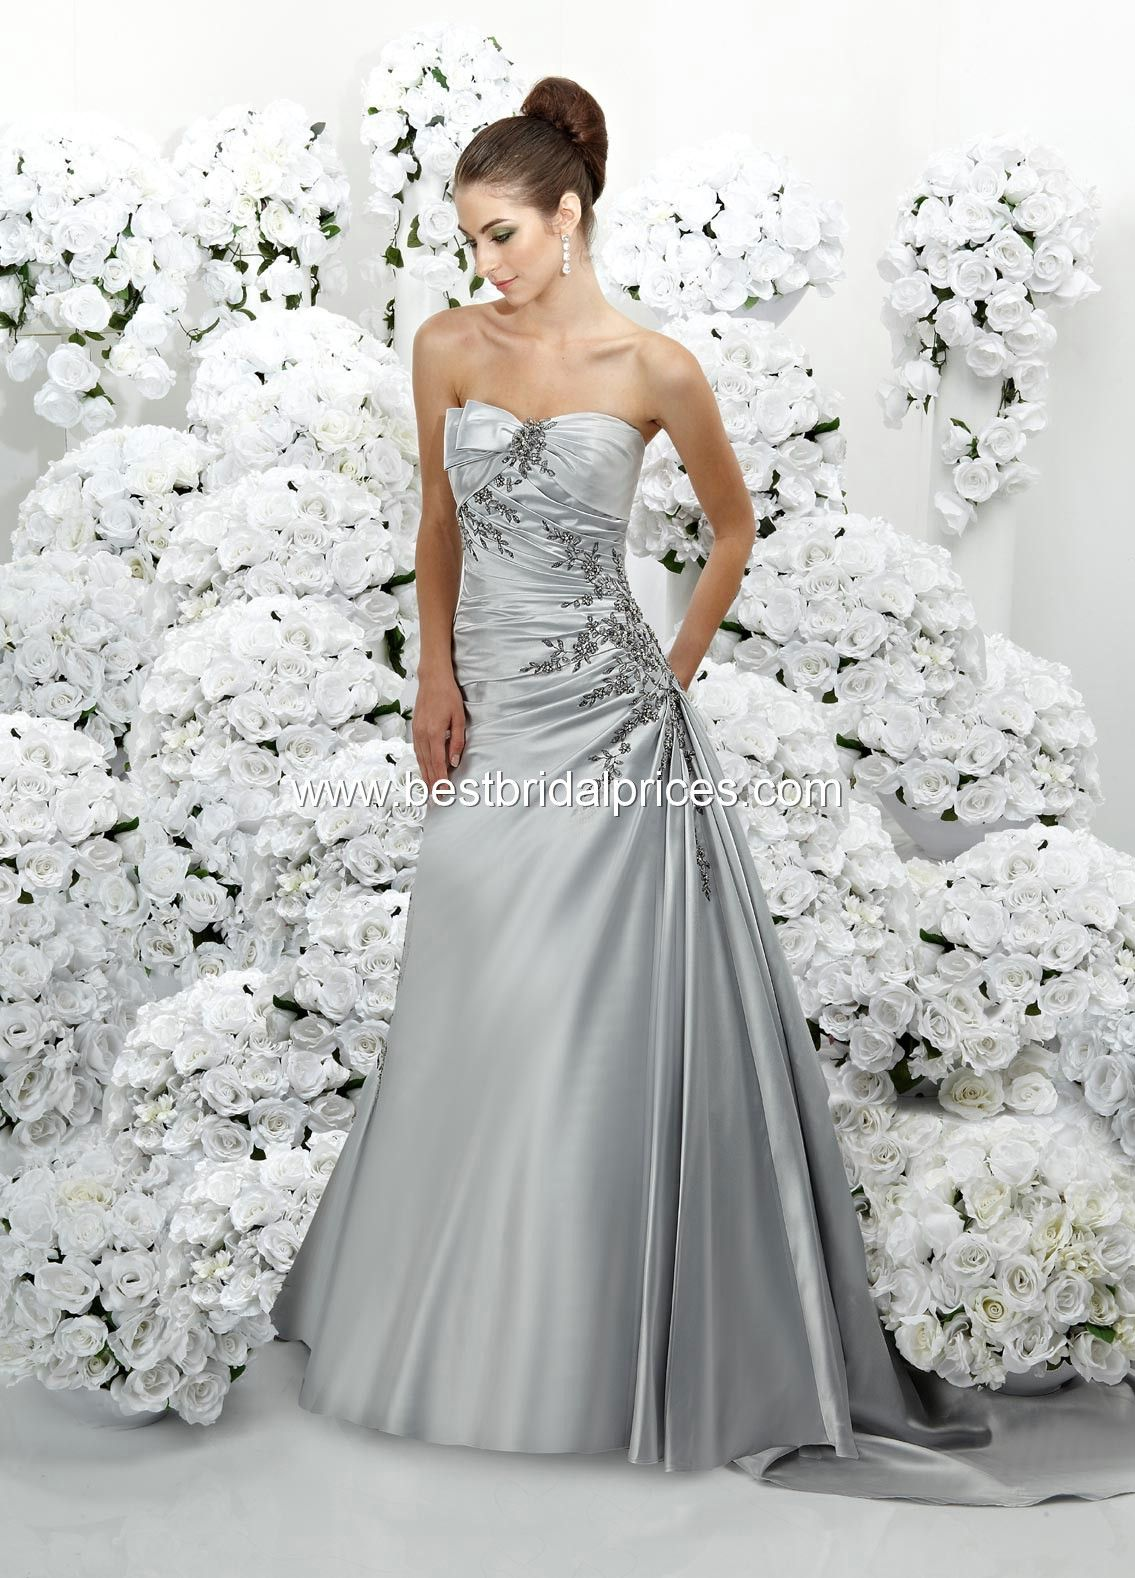 Platinum Silver Wedding Dress | Hochzeit in Silber o. Grau ...